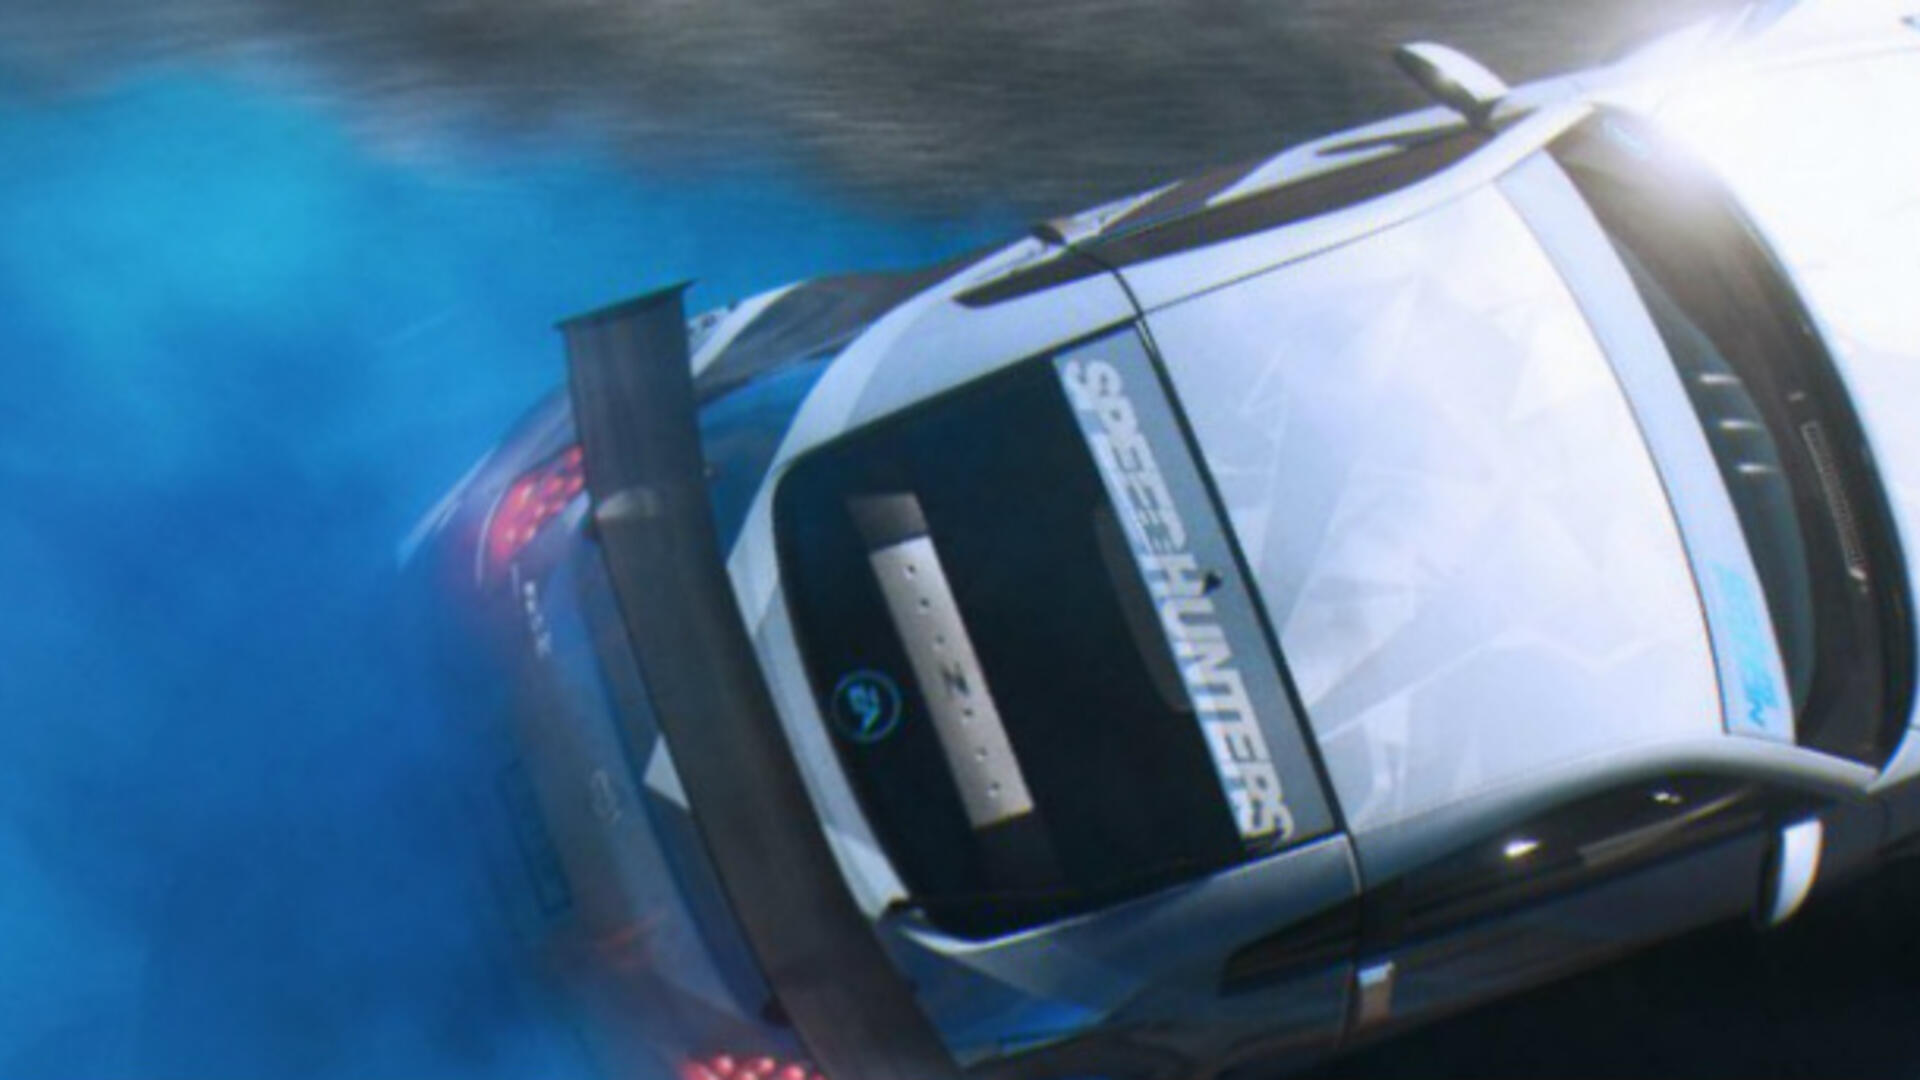 Need for Speed Payback Review: Needs More Tuning